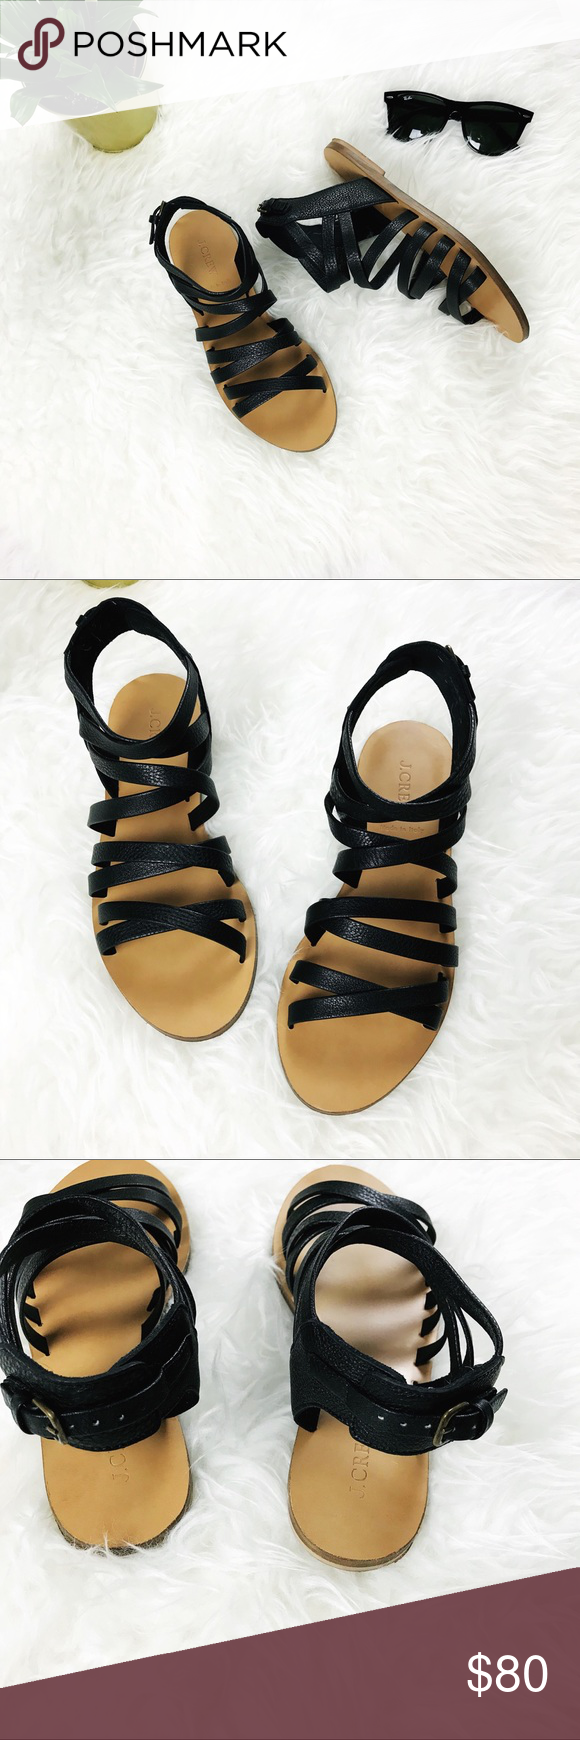 cd86240d634 J.CREW Callista Gladiator Sandals Gorgeous gladiator sandals made out of  buttery soft Italian leather